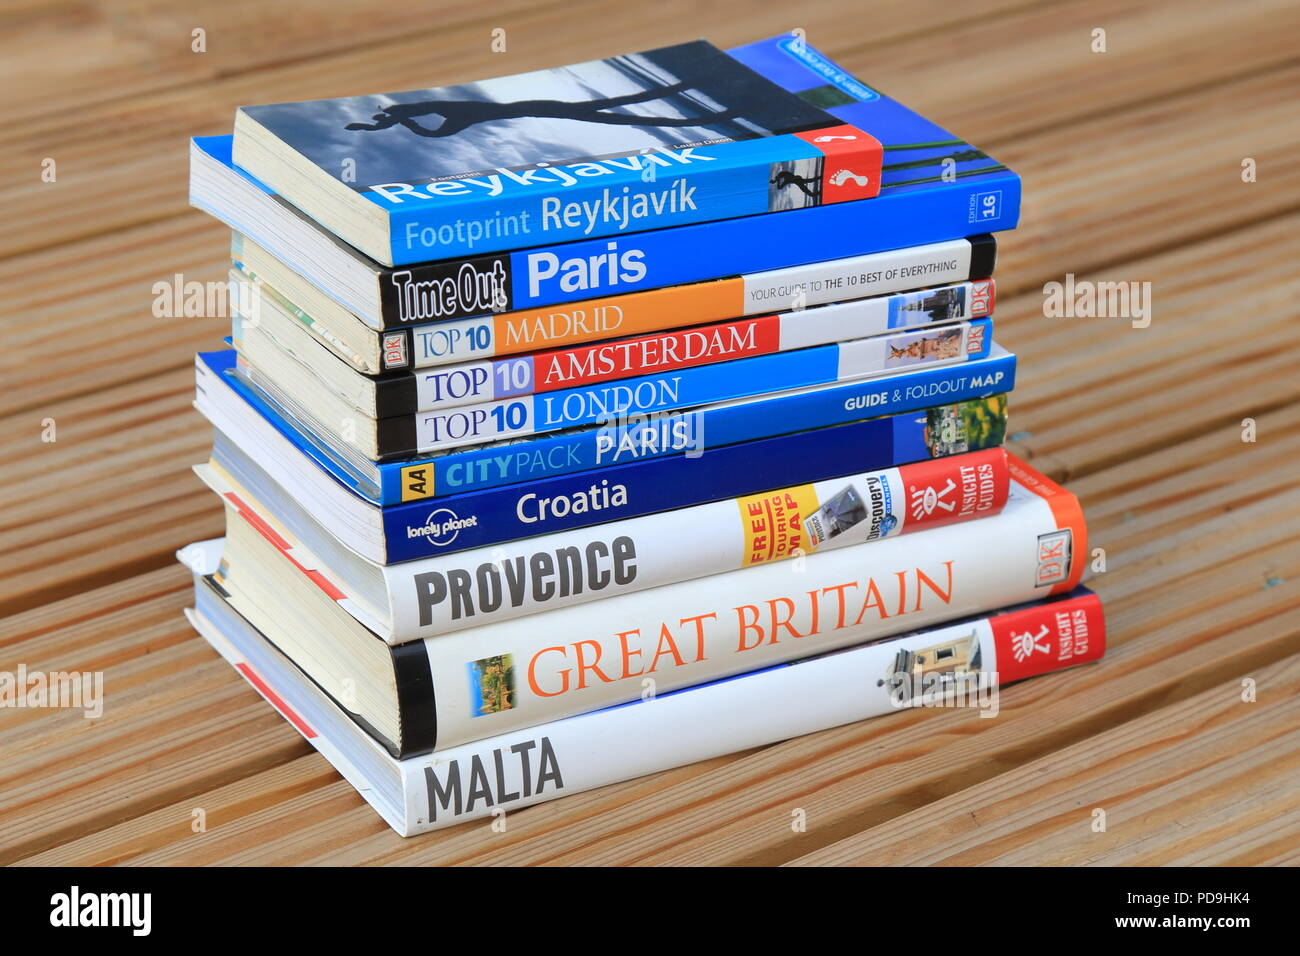 Stack of European travel guide books - Stock Image